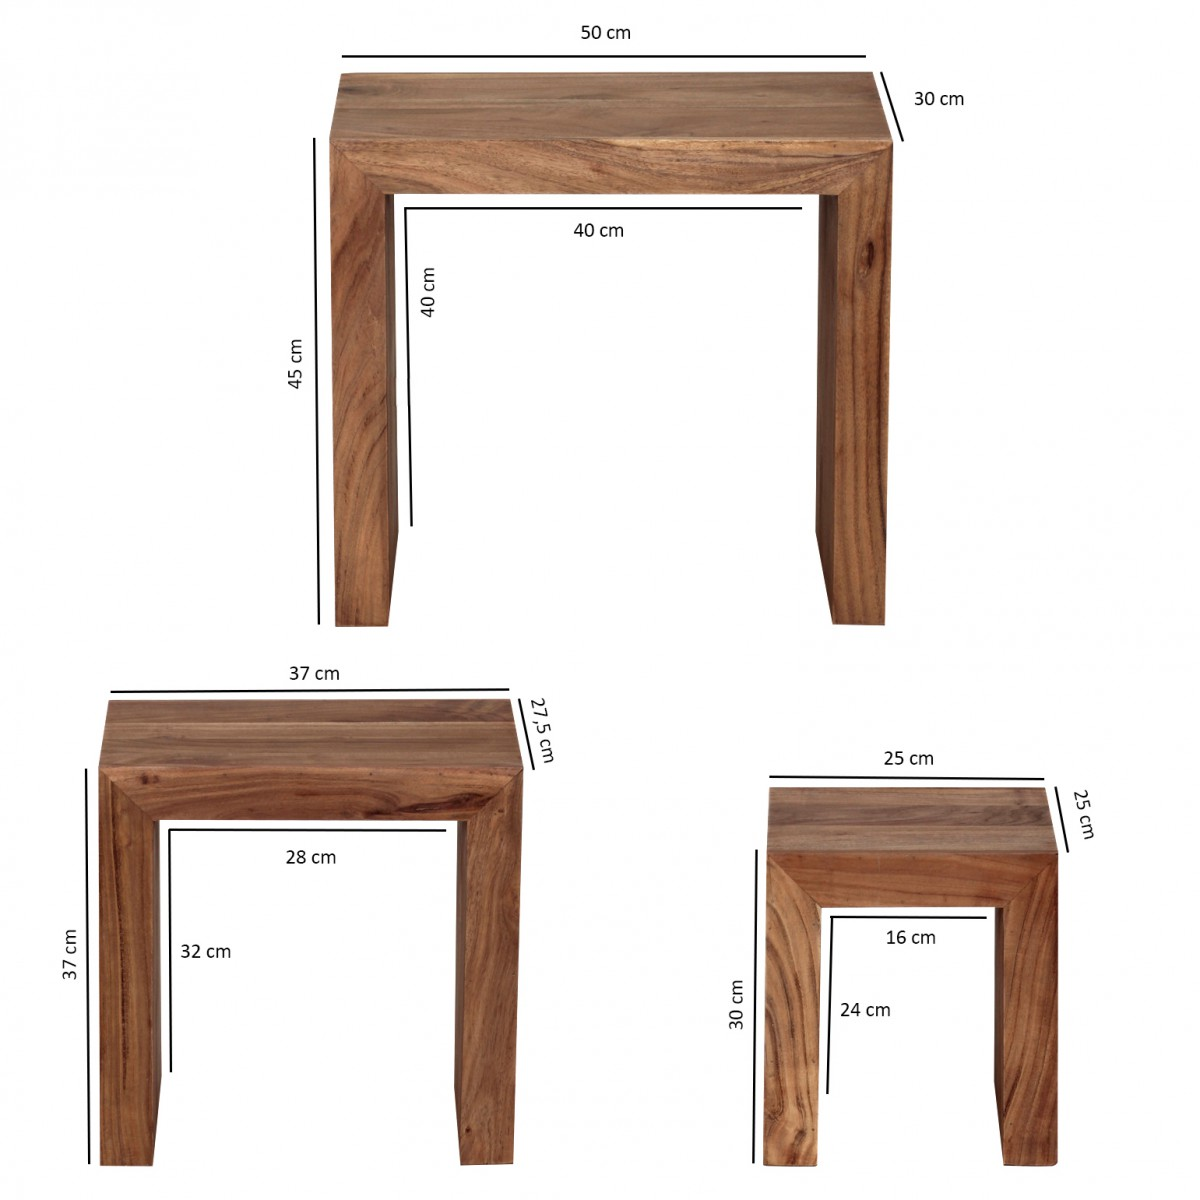 Wohnling Acacia 3 Piece Set Table Solid Wood Side Table Coffee Table New